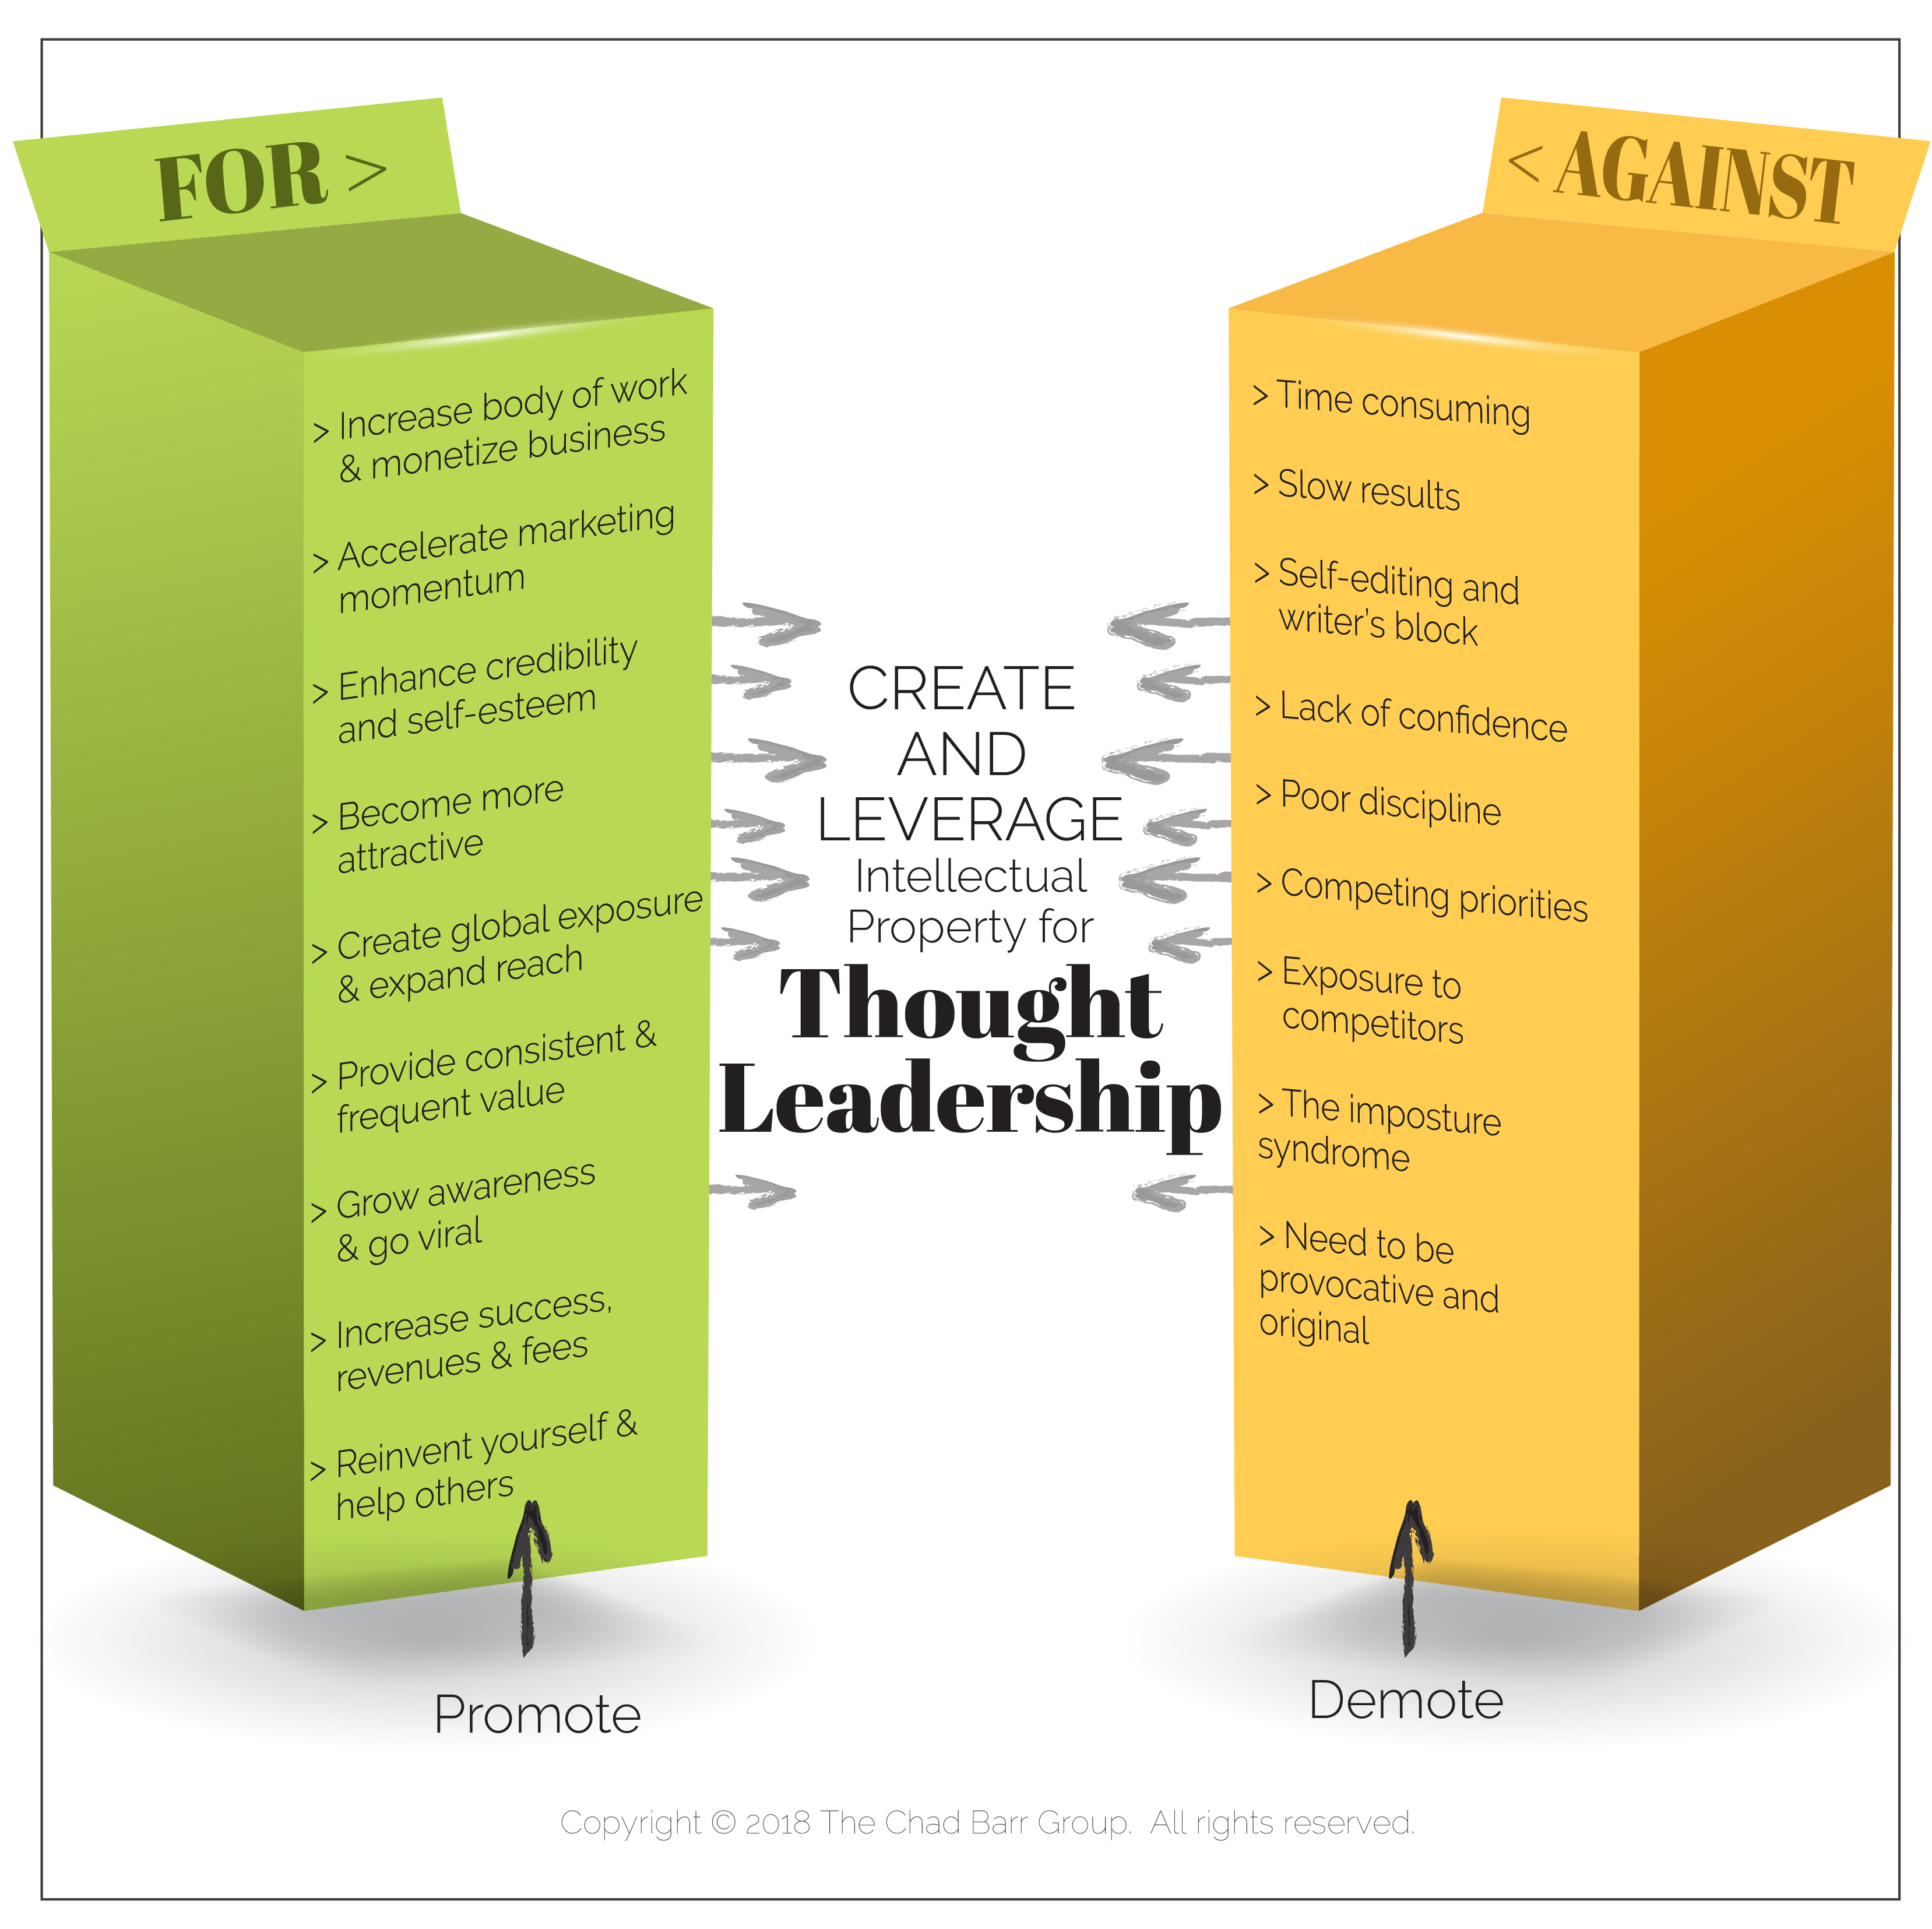 Thought Leader: Earning Your Thought Leadership